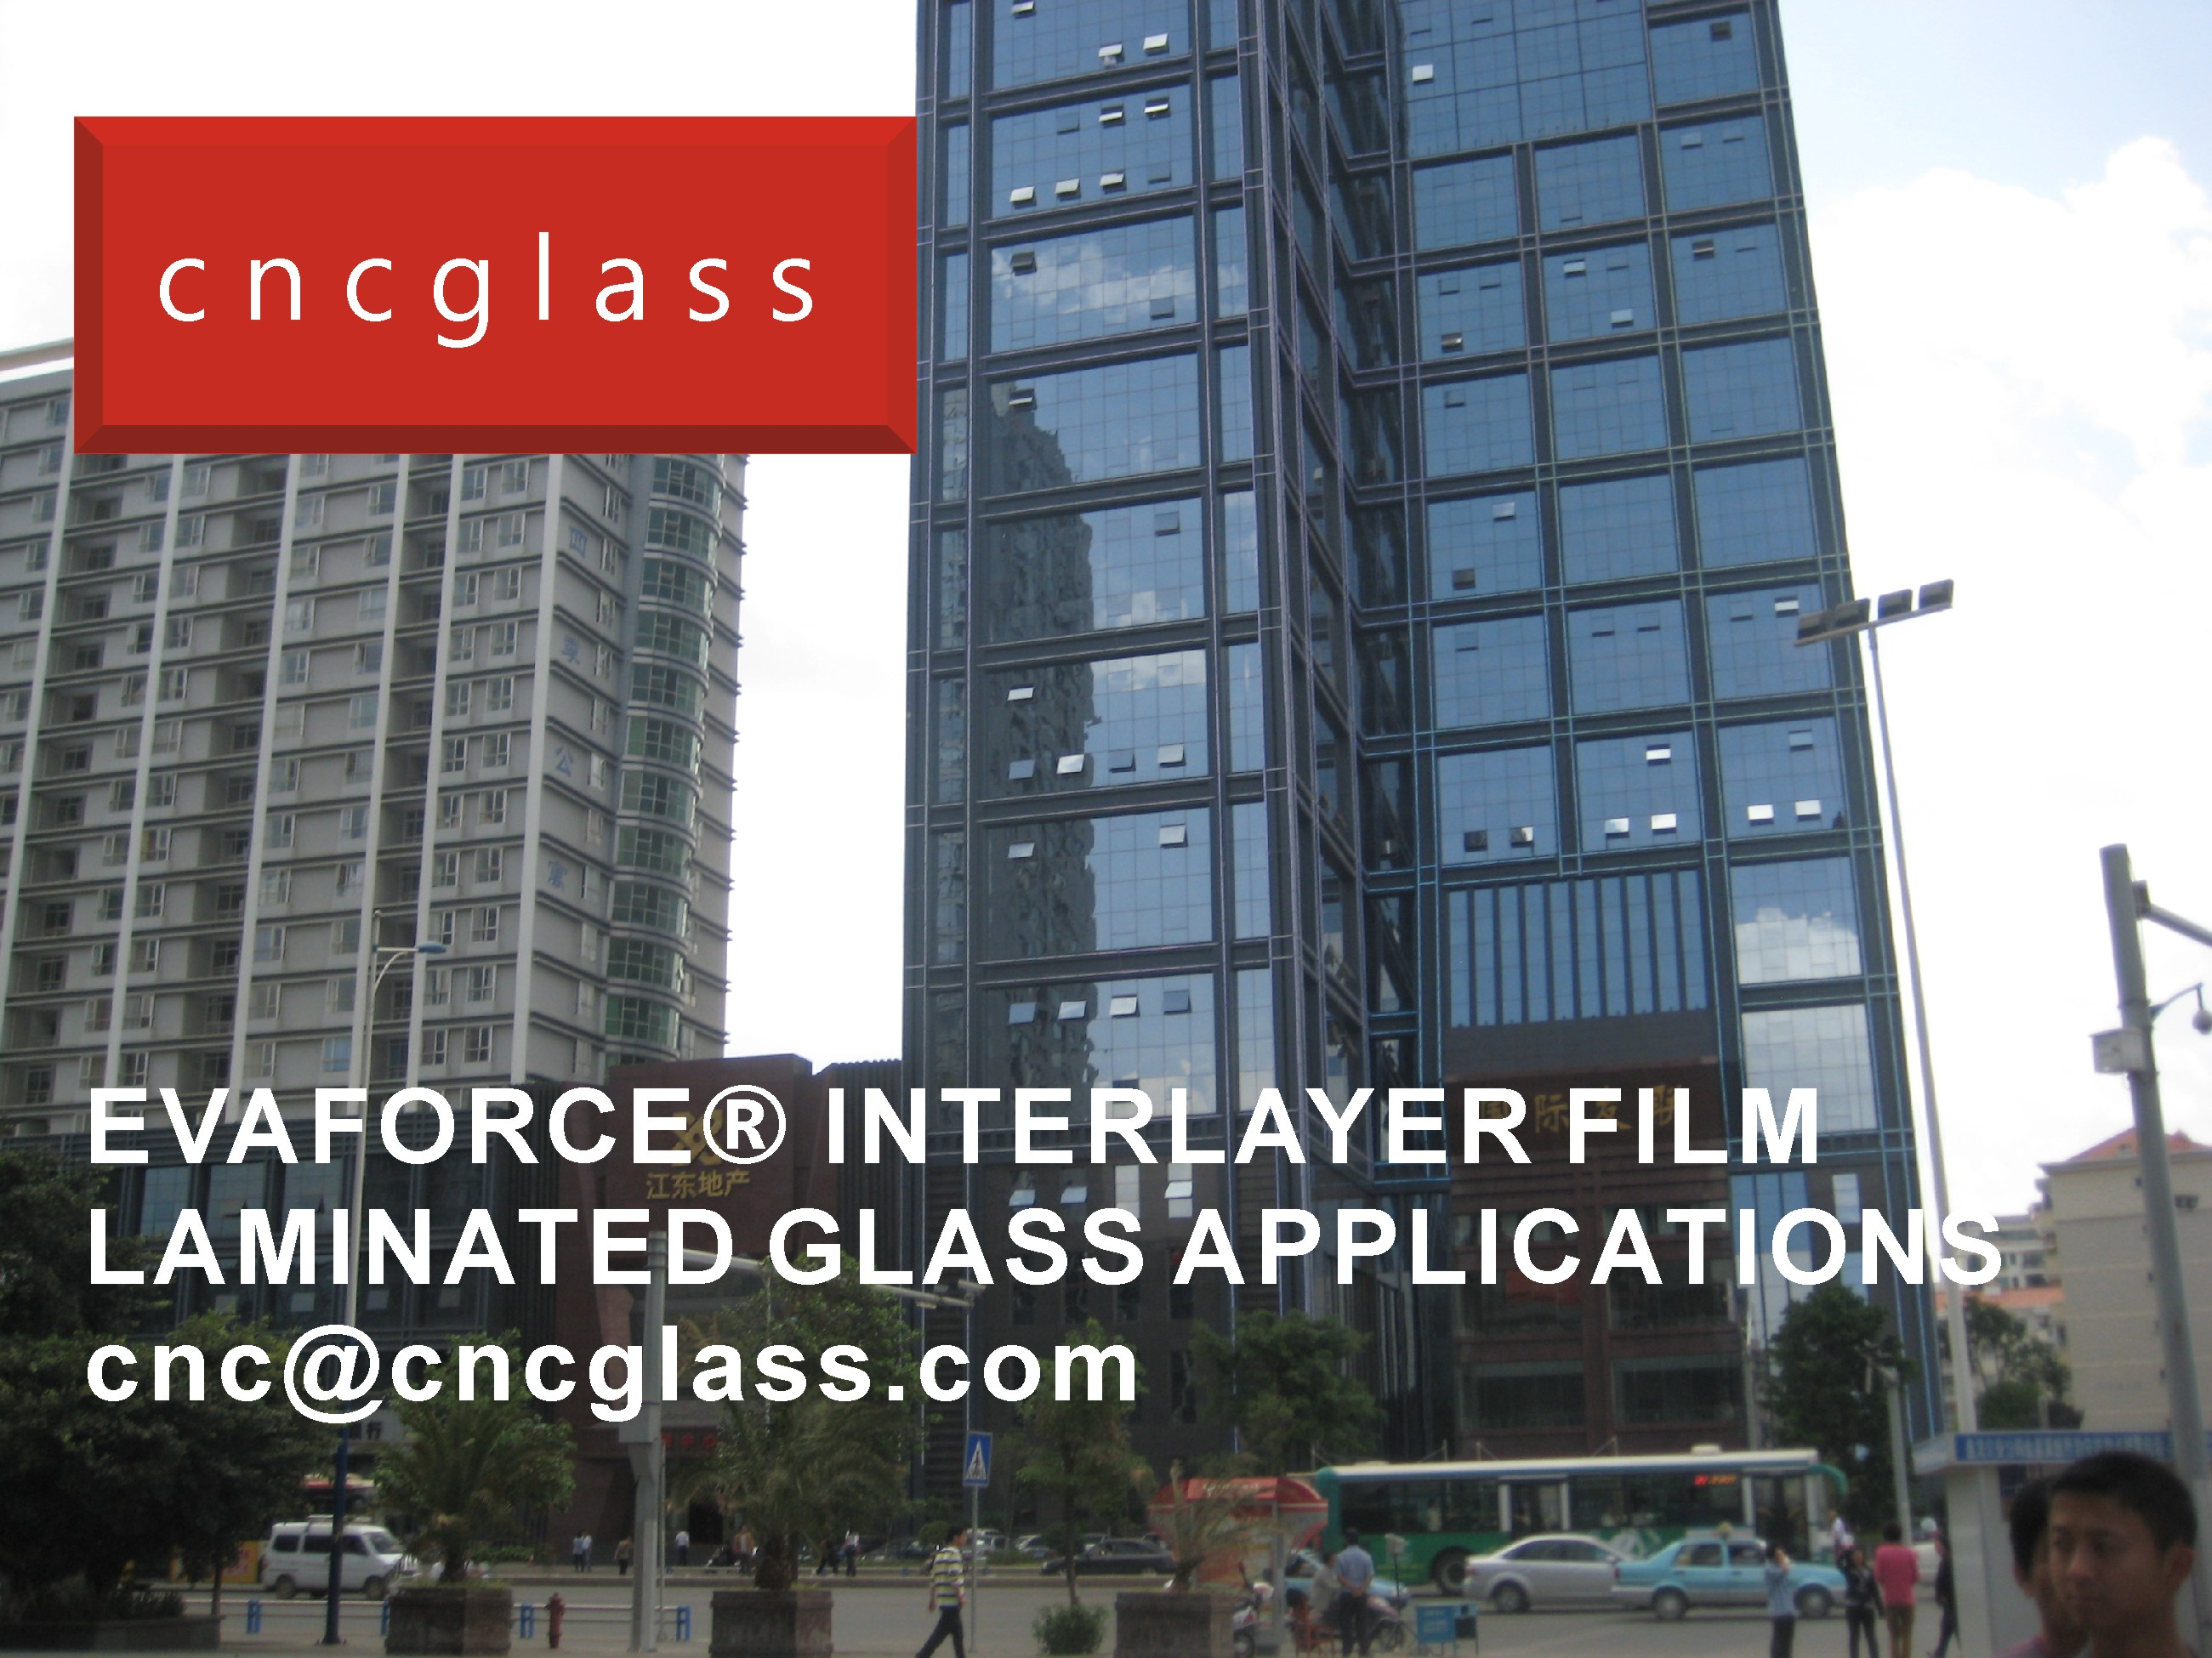 EVAFORCE INTERLAYER FILM LAMINATED GLASS APPLICATIONS (1)